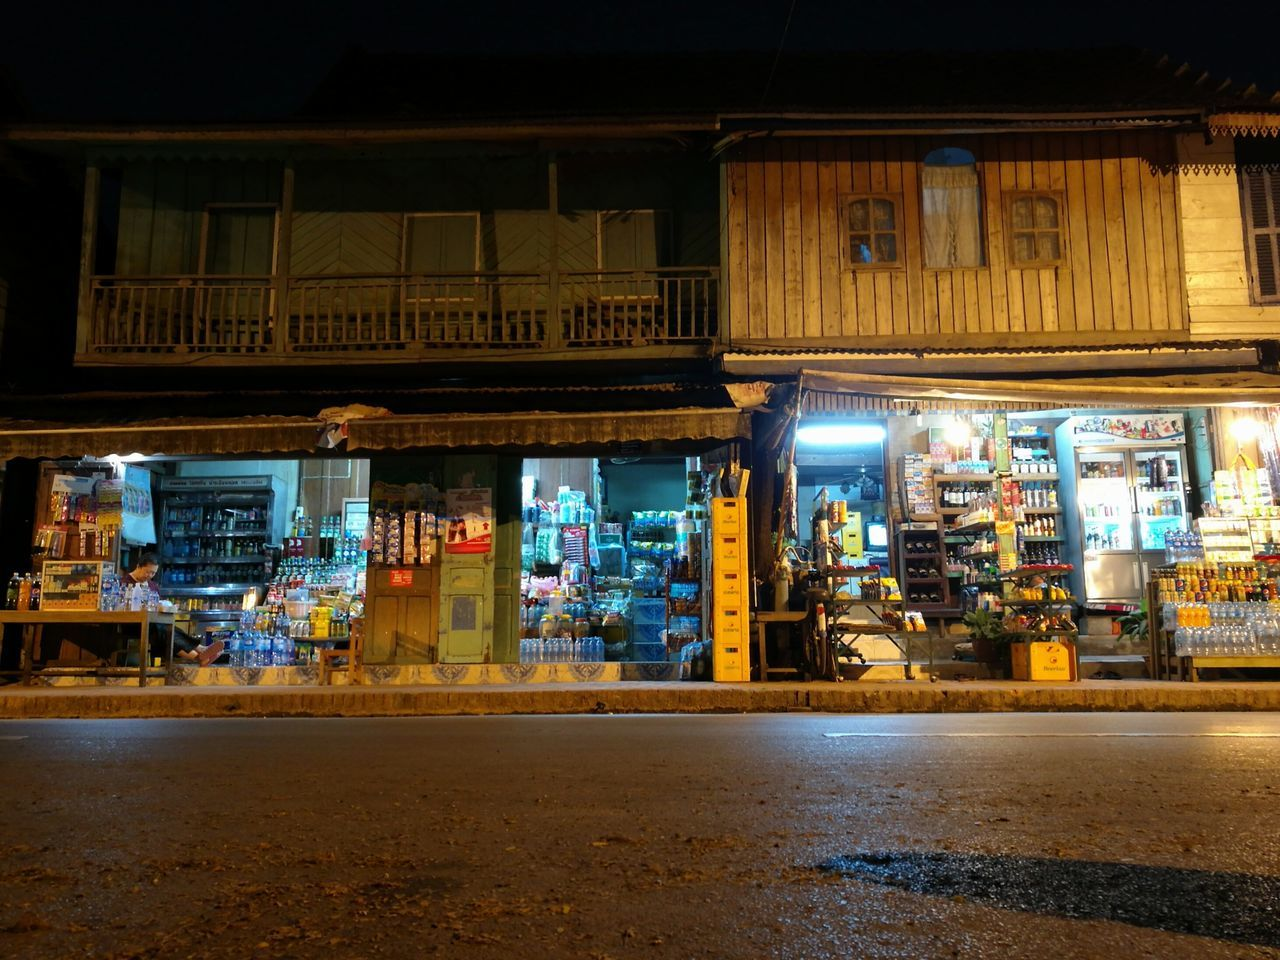 Illuminated Night City Store Building Exterior Architecture No People Outdoors Neon Supermarket EyeEmNewHere Laos Travel Asianstyle Asianlife Asien Street Photography Built Structure Lao Culture Travel Building City Architecture